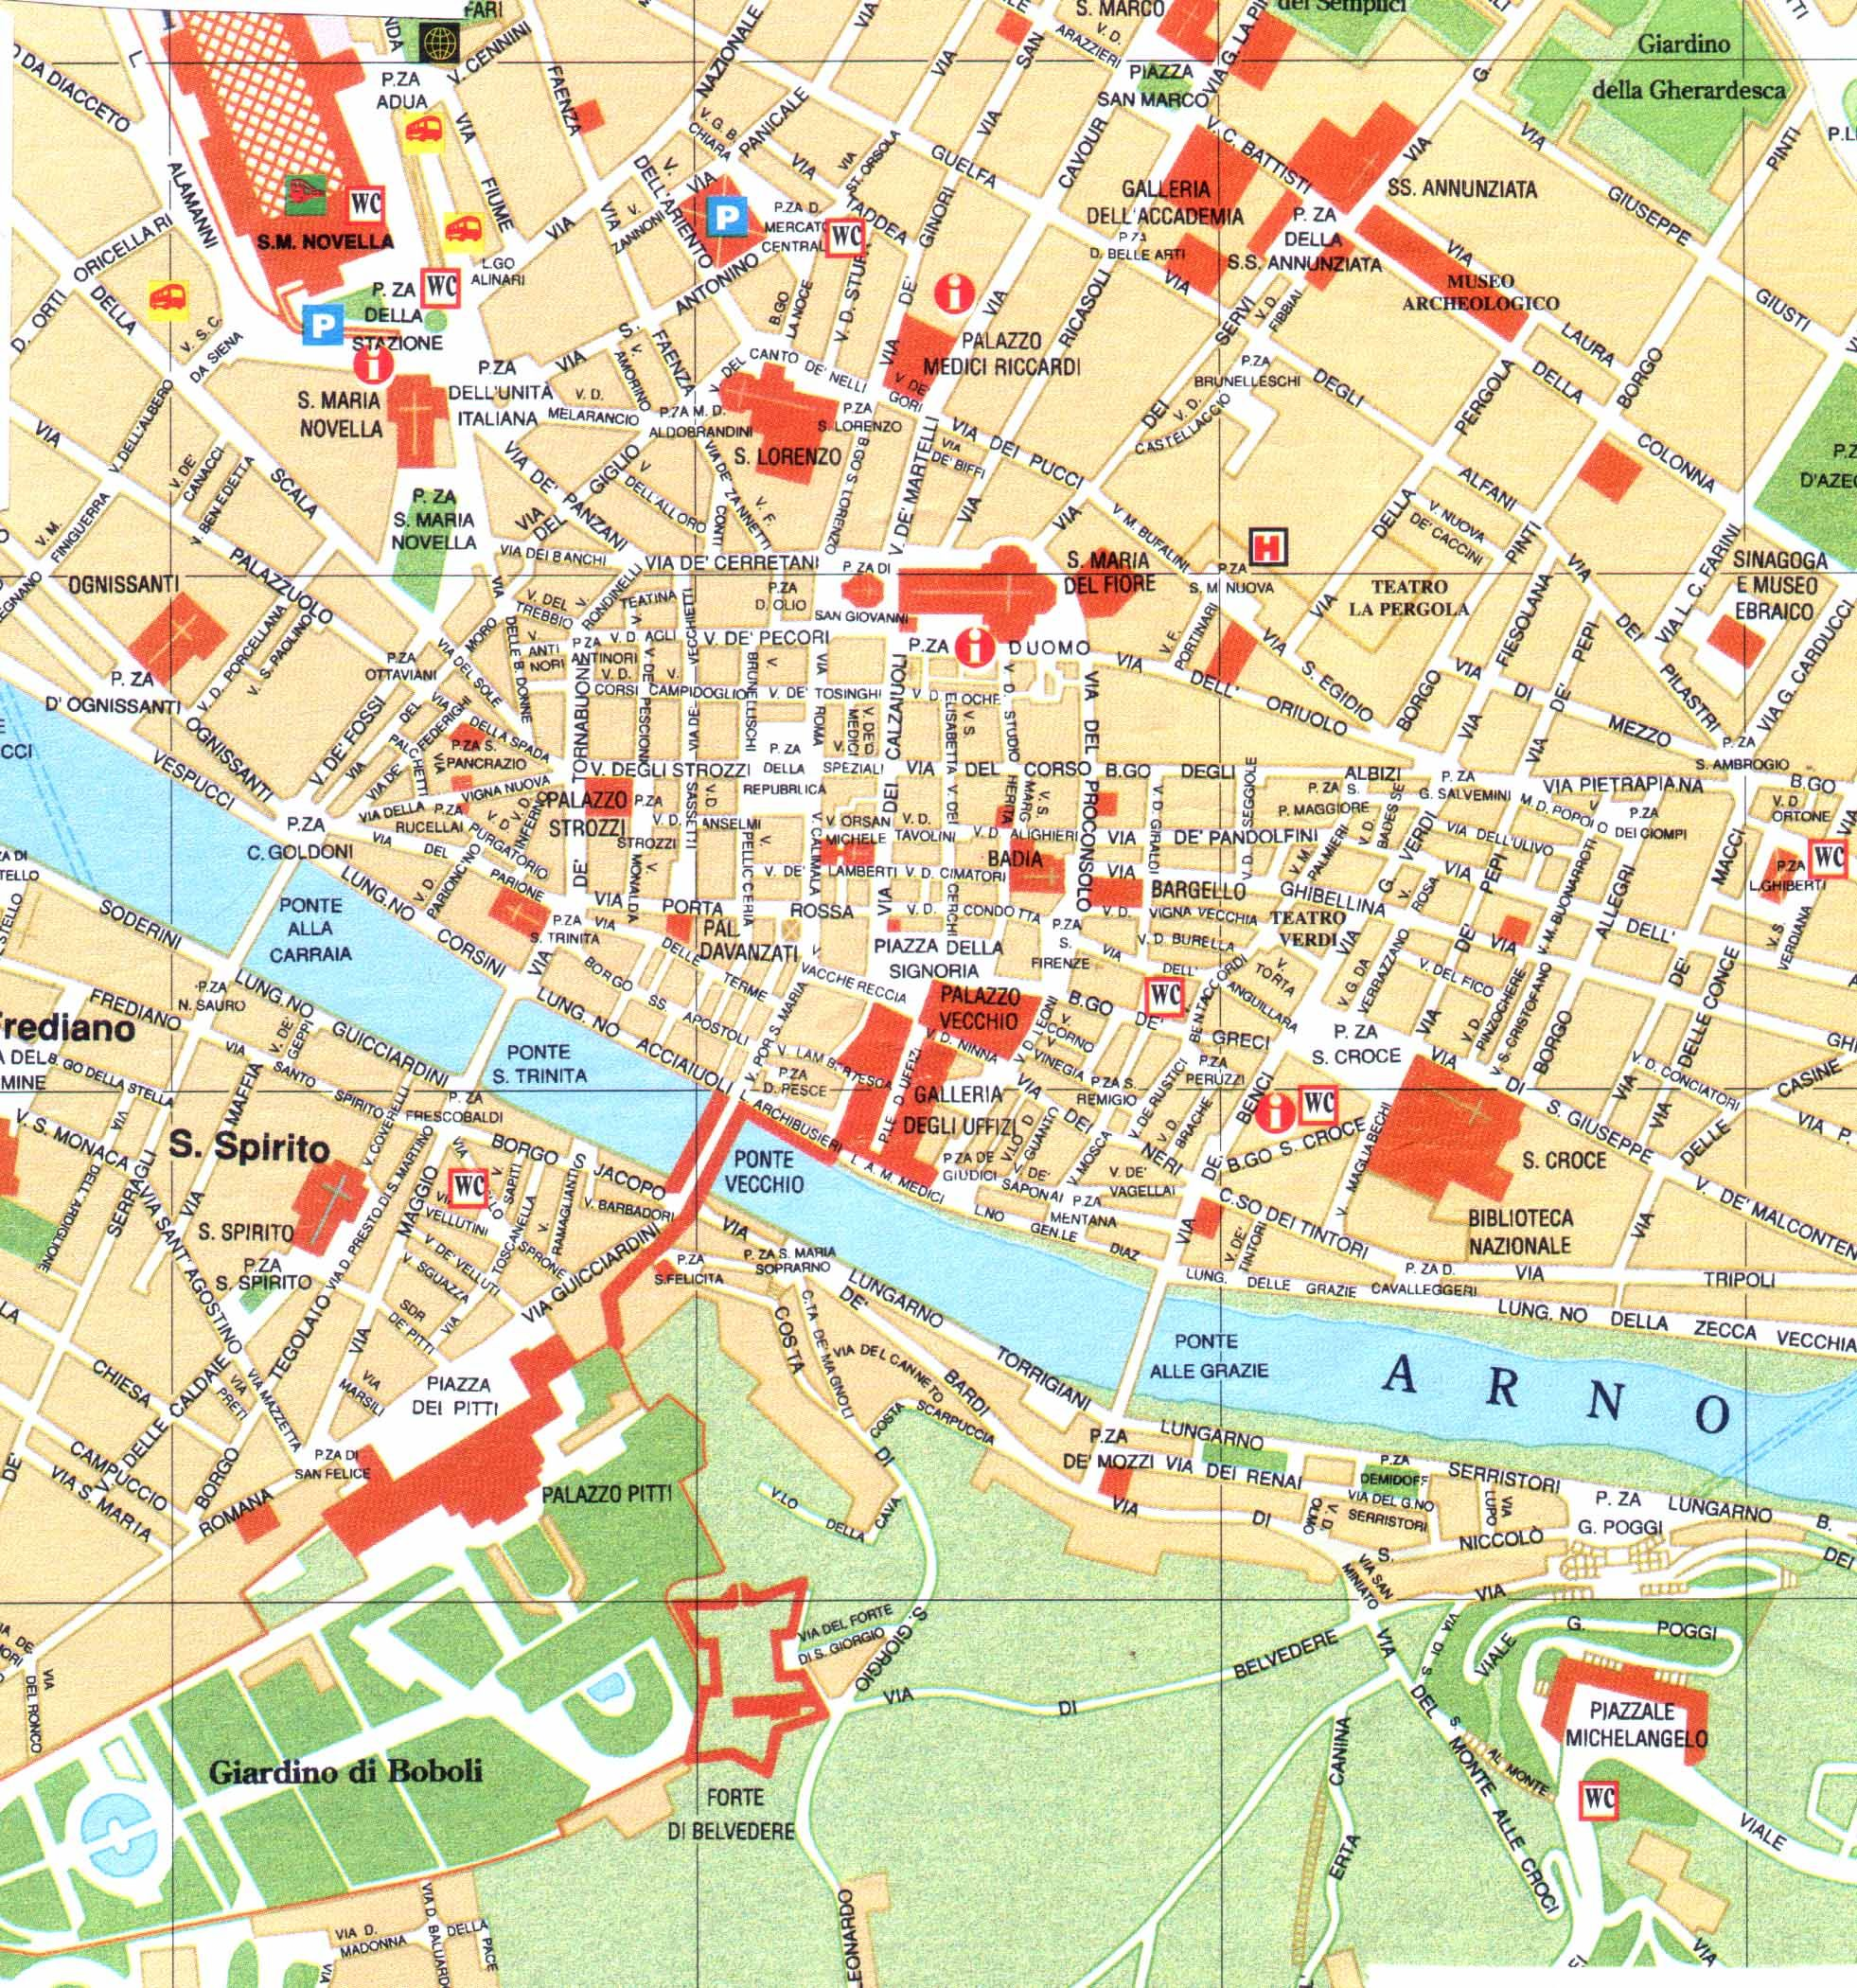 FLORENCE CITY MAP  Google Search  Travel maps  Pinterest